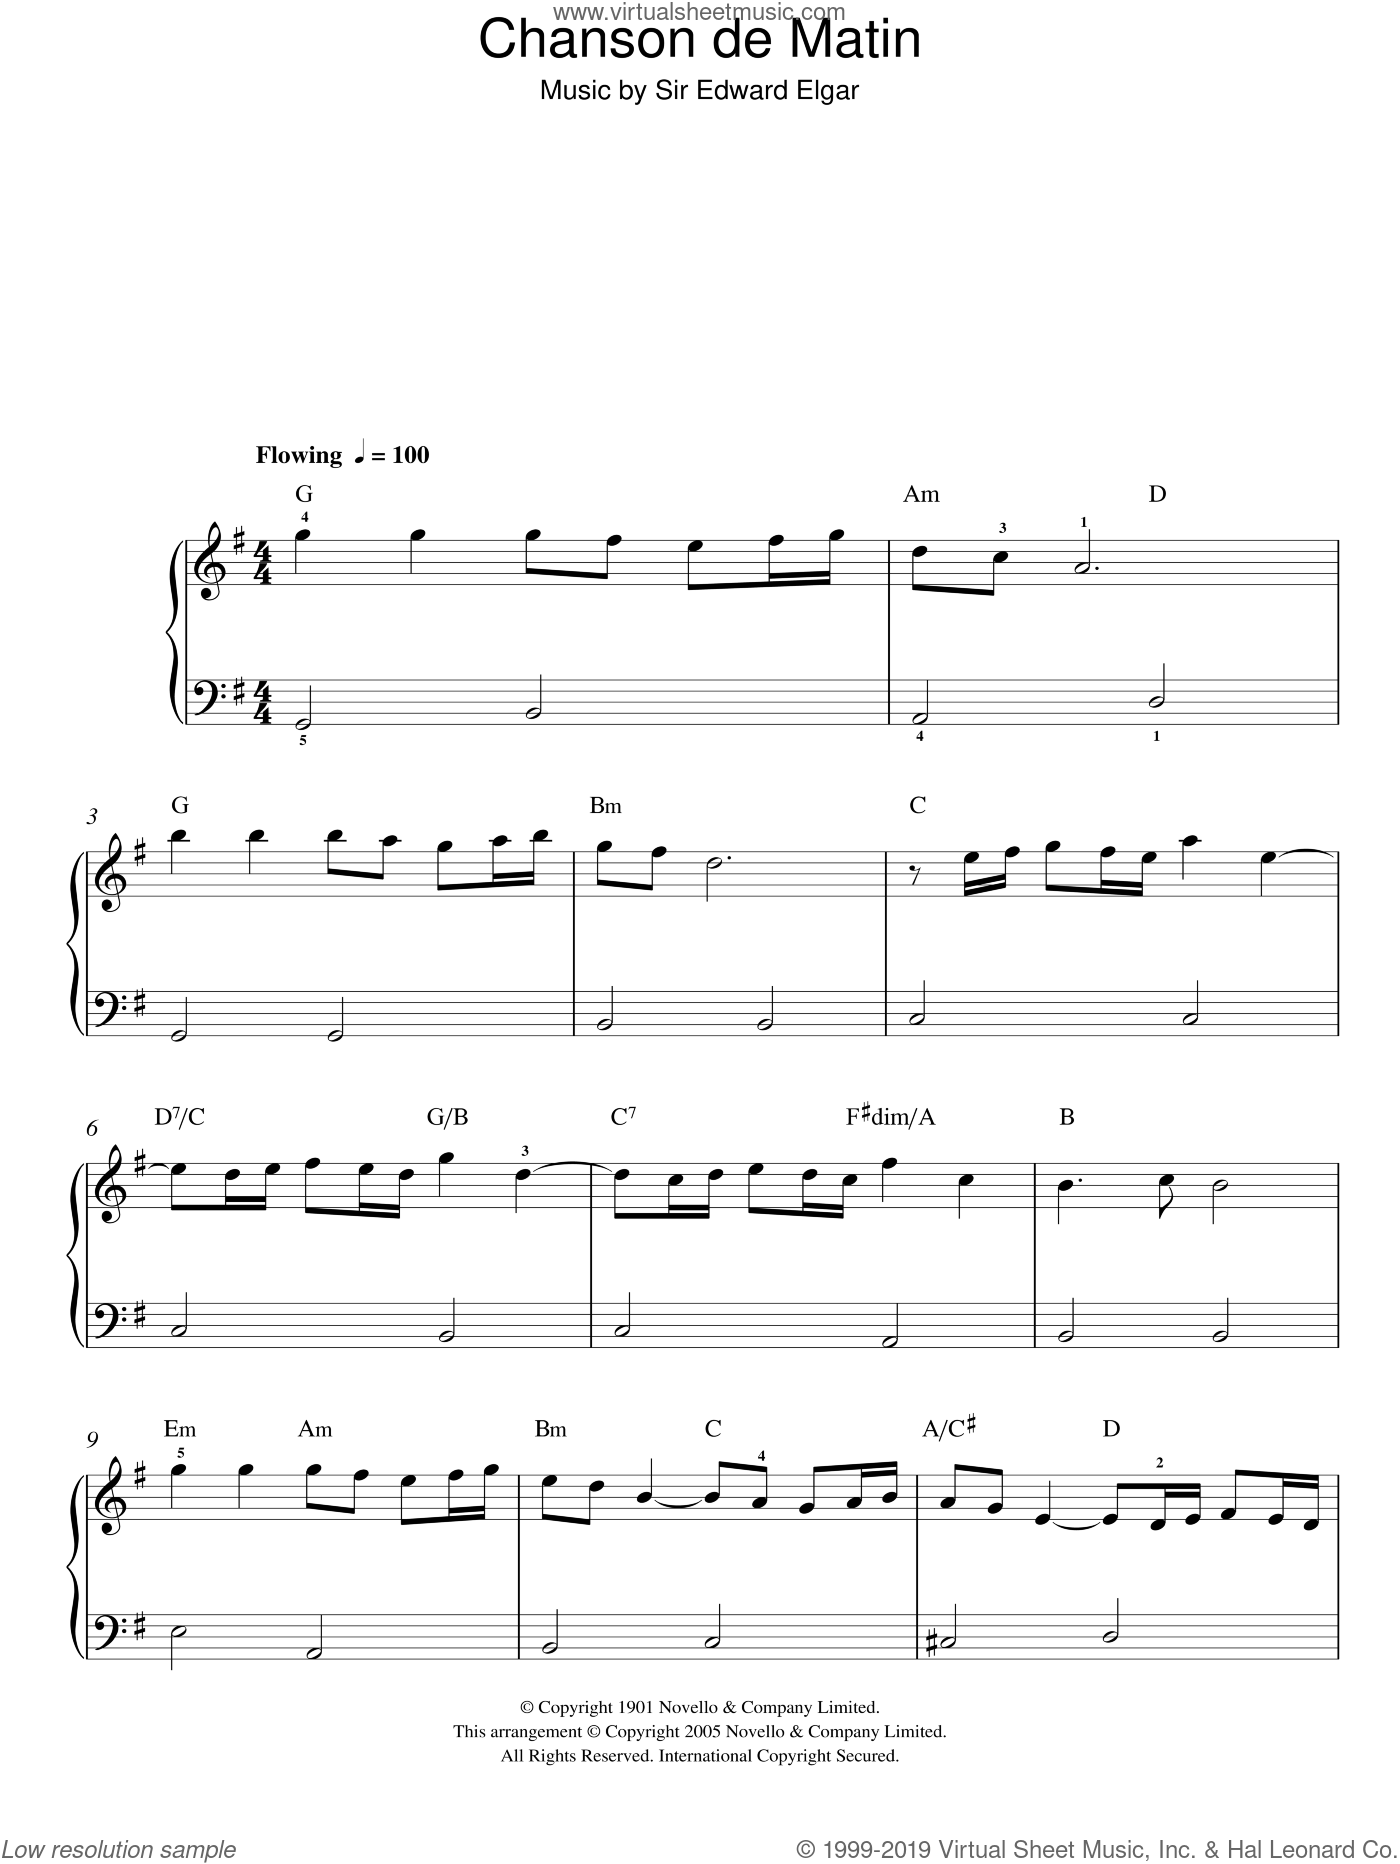 Chanson De Matin Op. 15, No. 2 sheet music for piano solo by Edward Elgar. Score Image Preview.